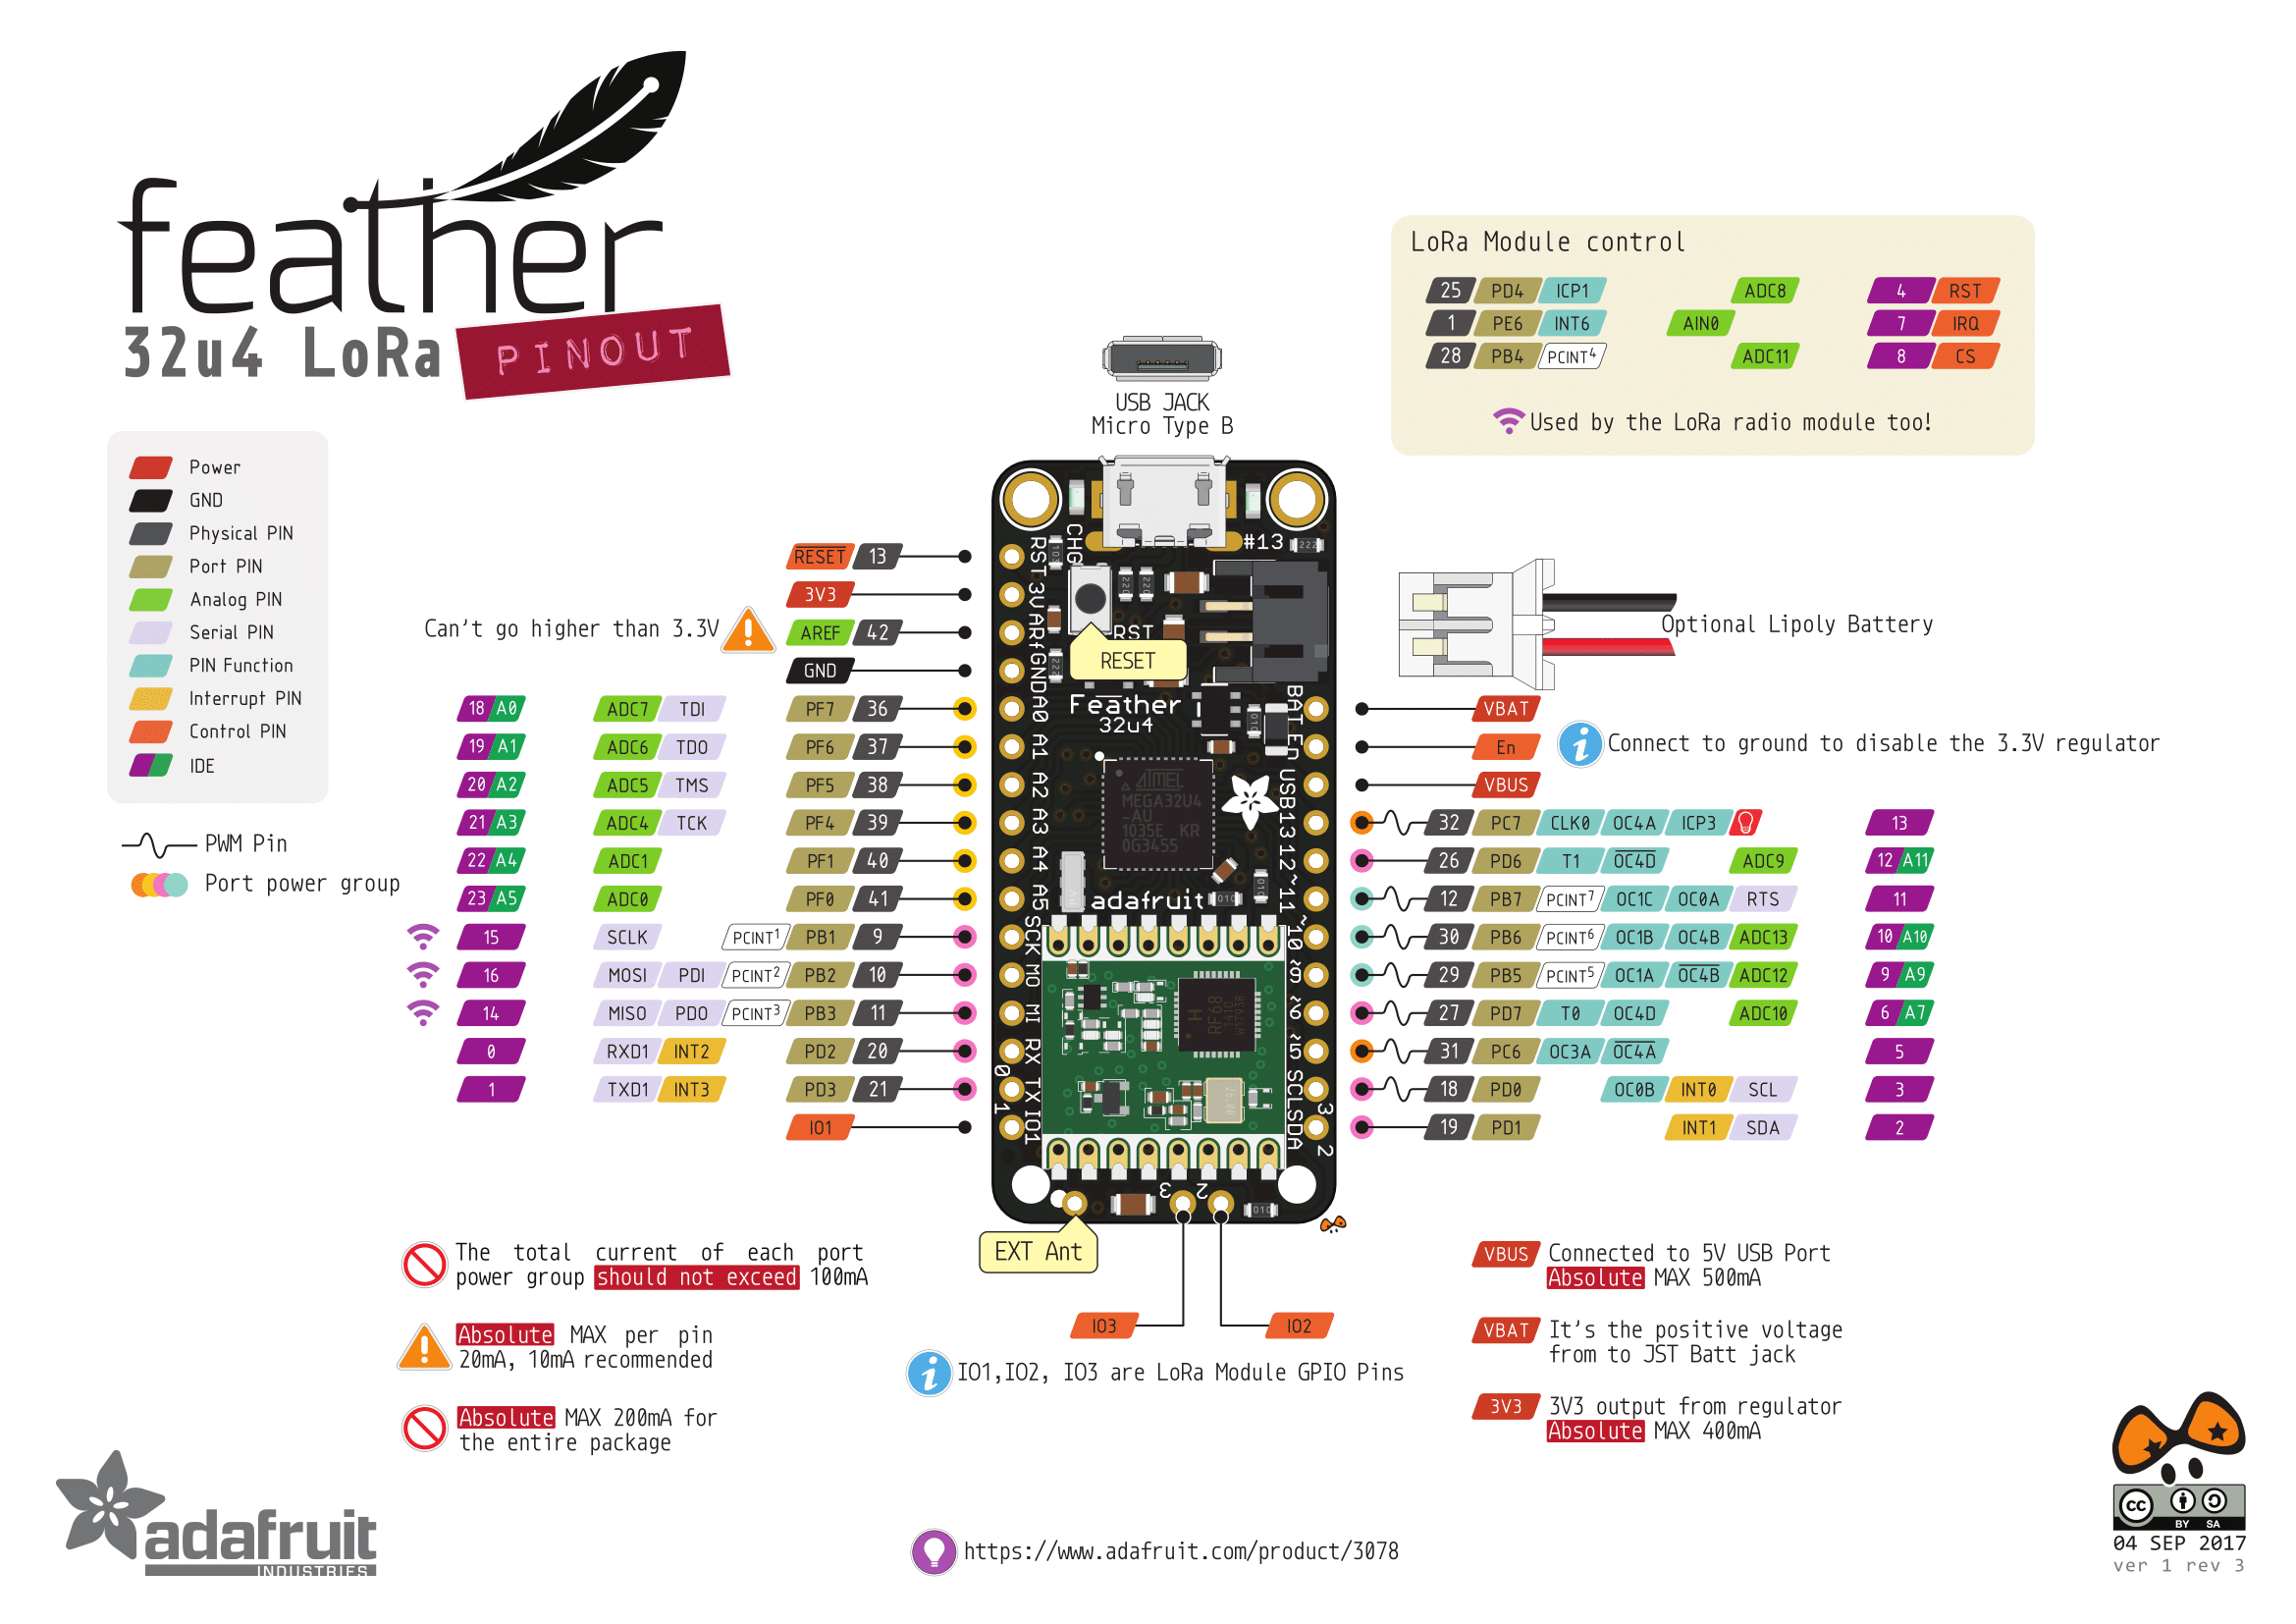 feather_32u4_LoRa_v1.3-1.png